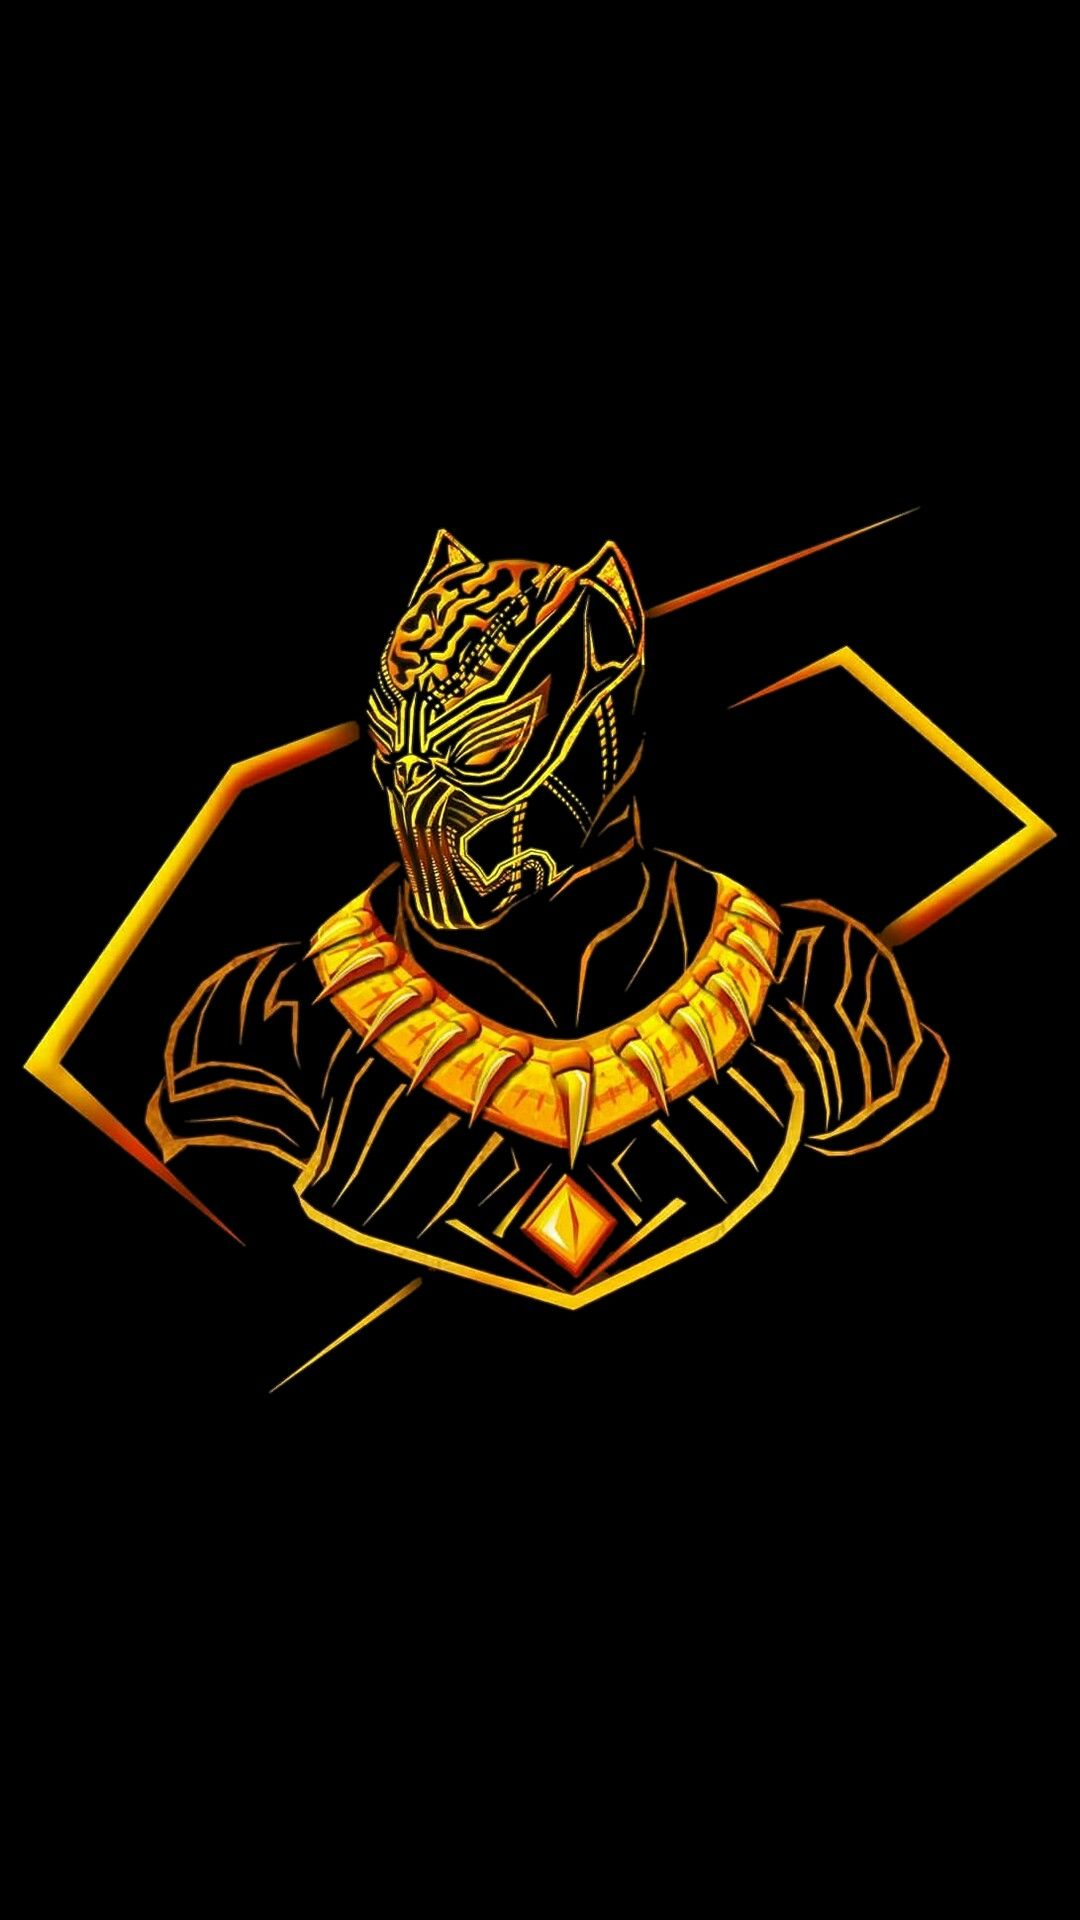 Black Panther Logo Android Wallpapers - Wallpaper Cave